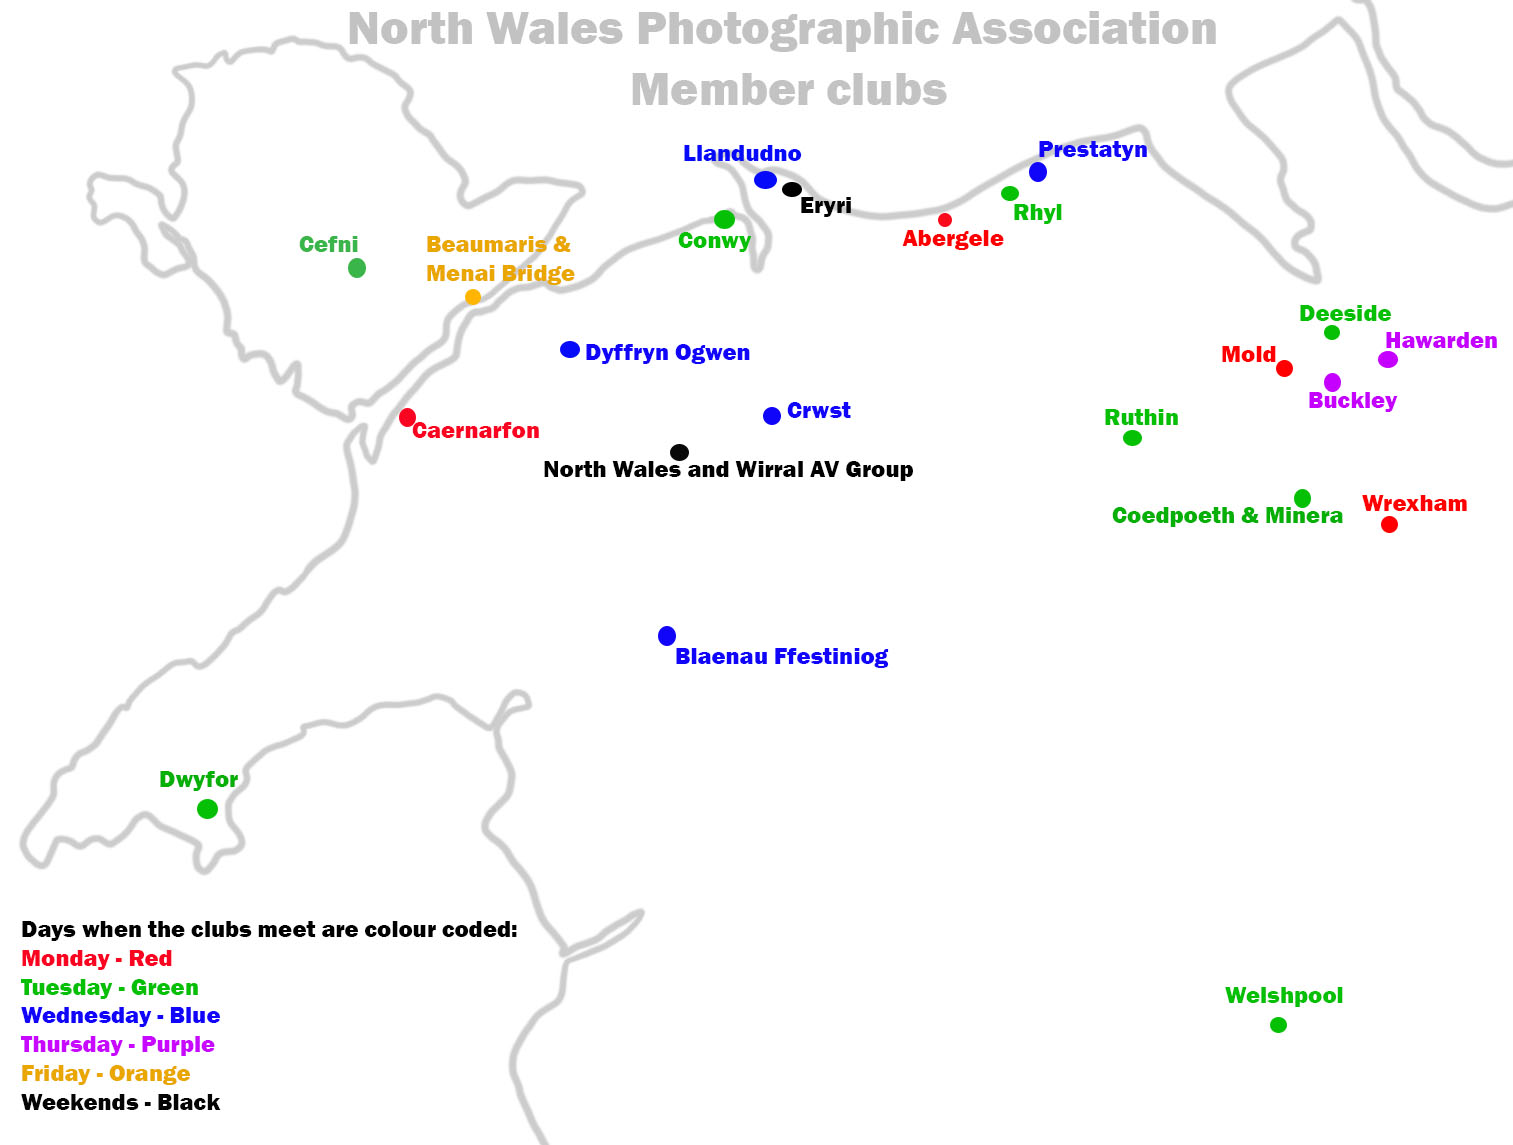 NWPA Map of Member clubs